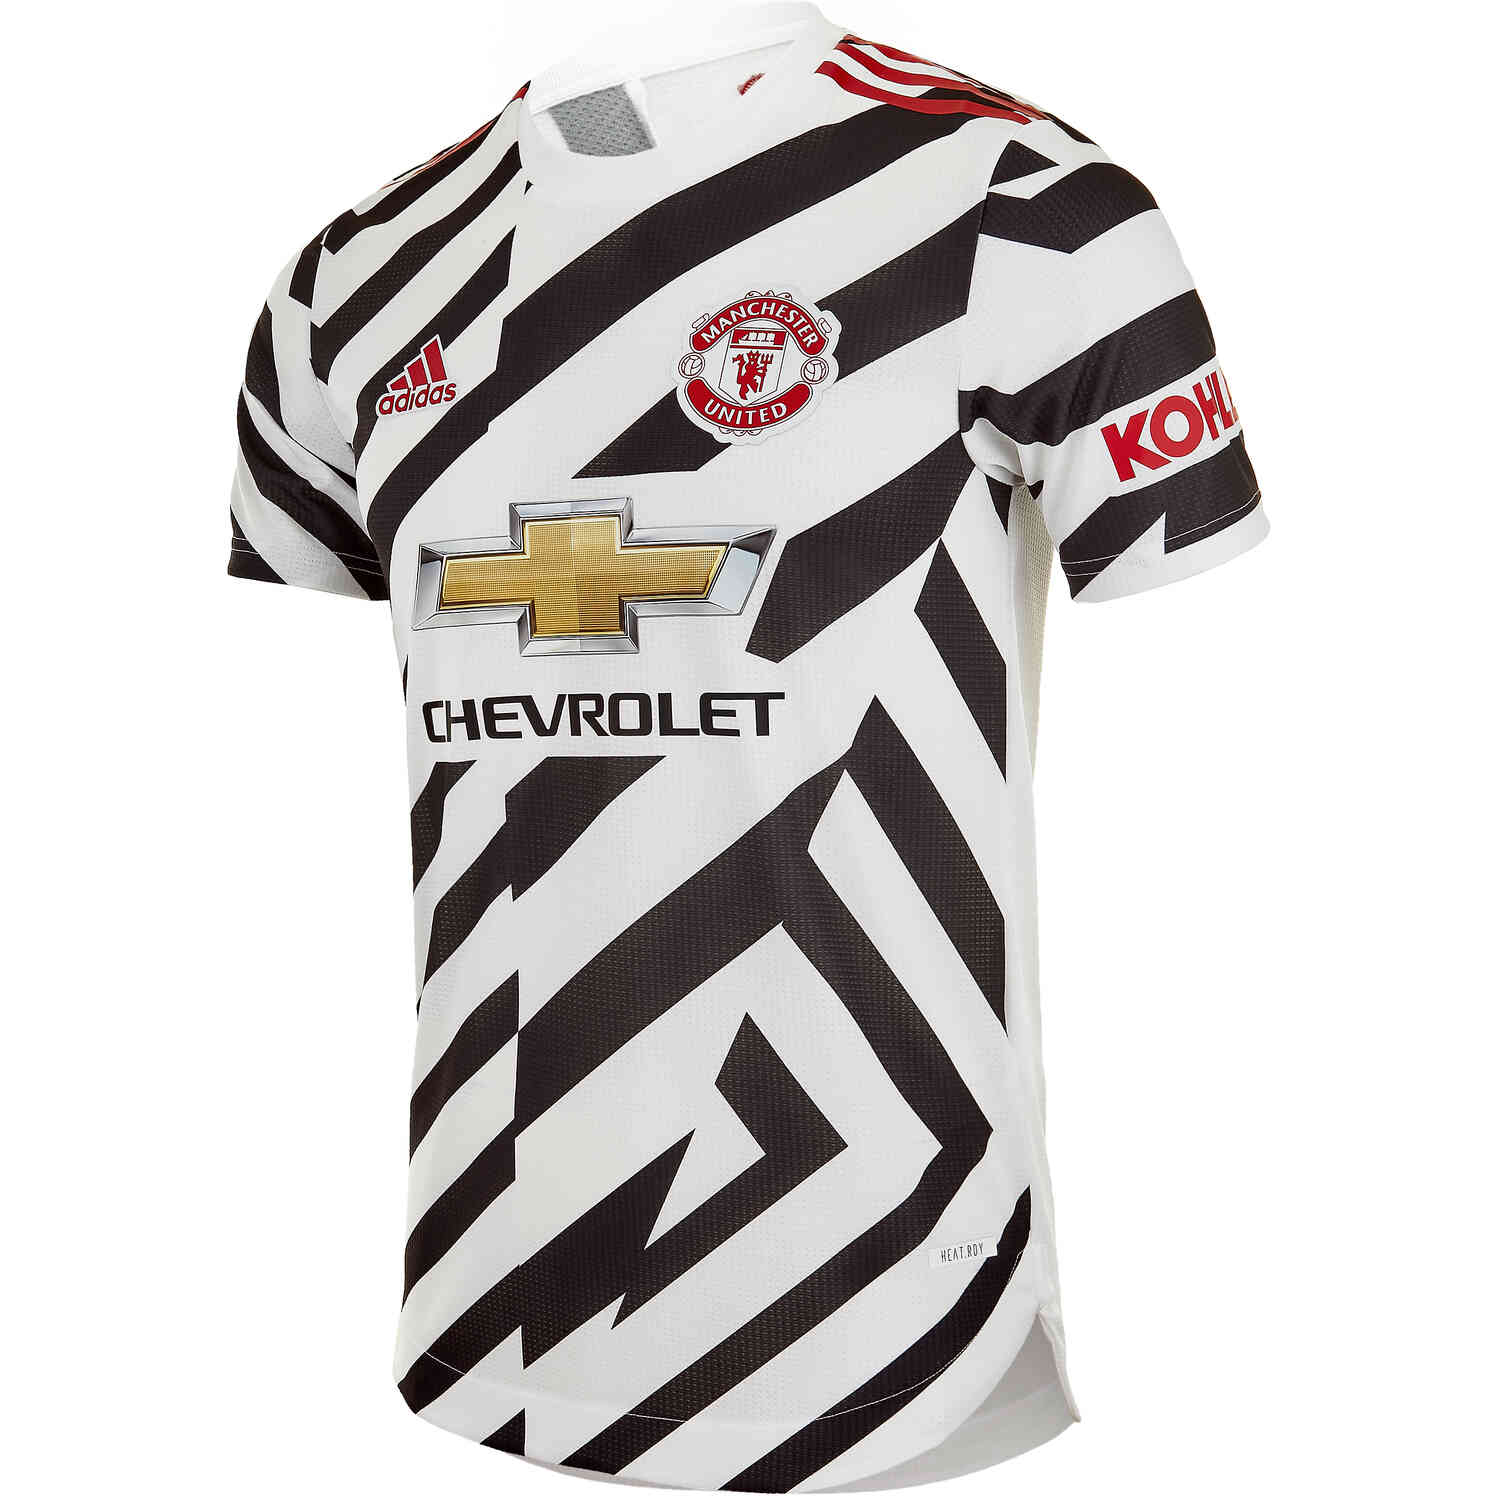 2020/21 adidas Manchester United 3rd Authentic Jersey - SoccerPro